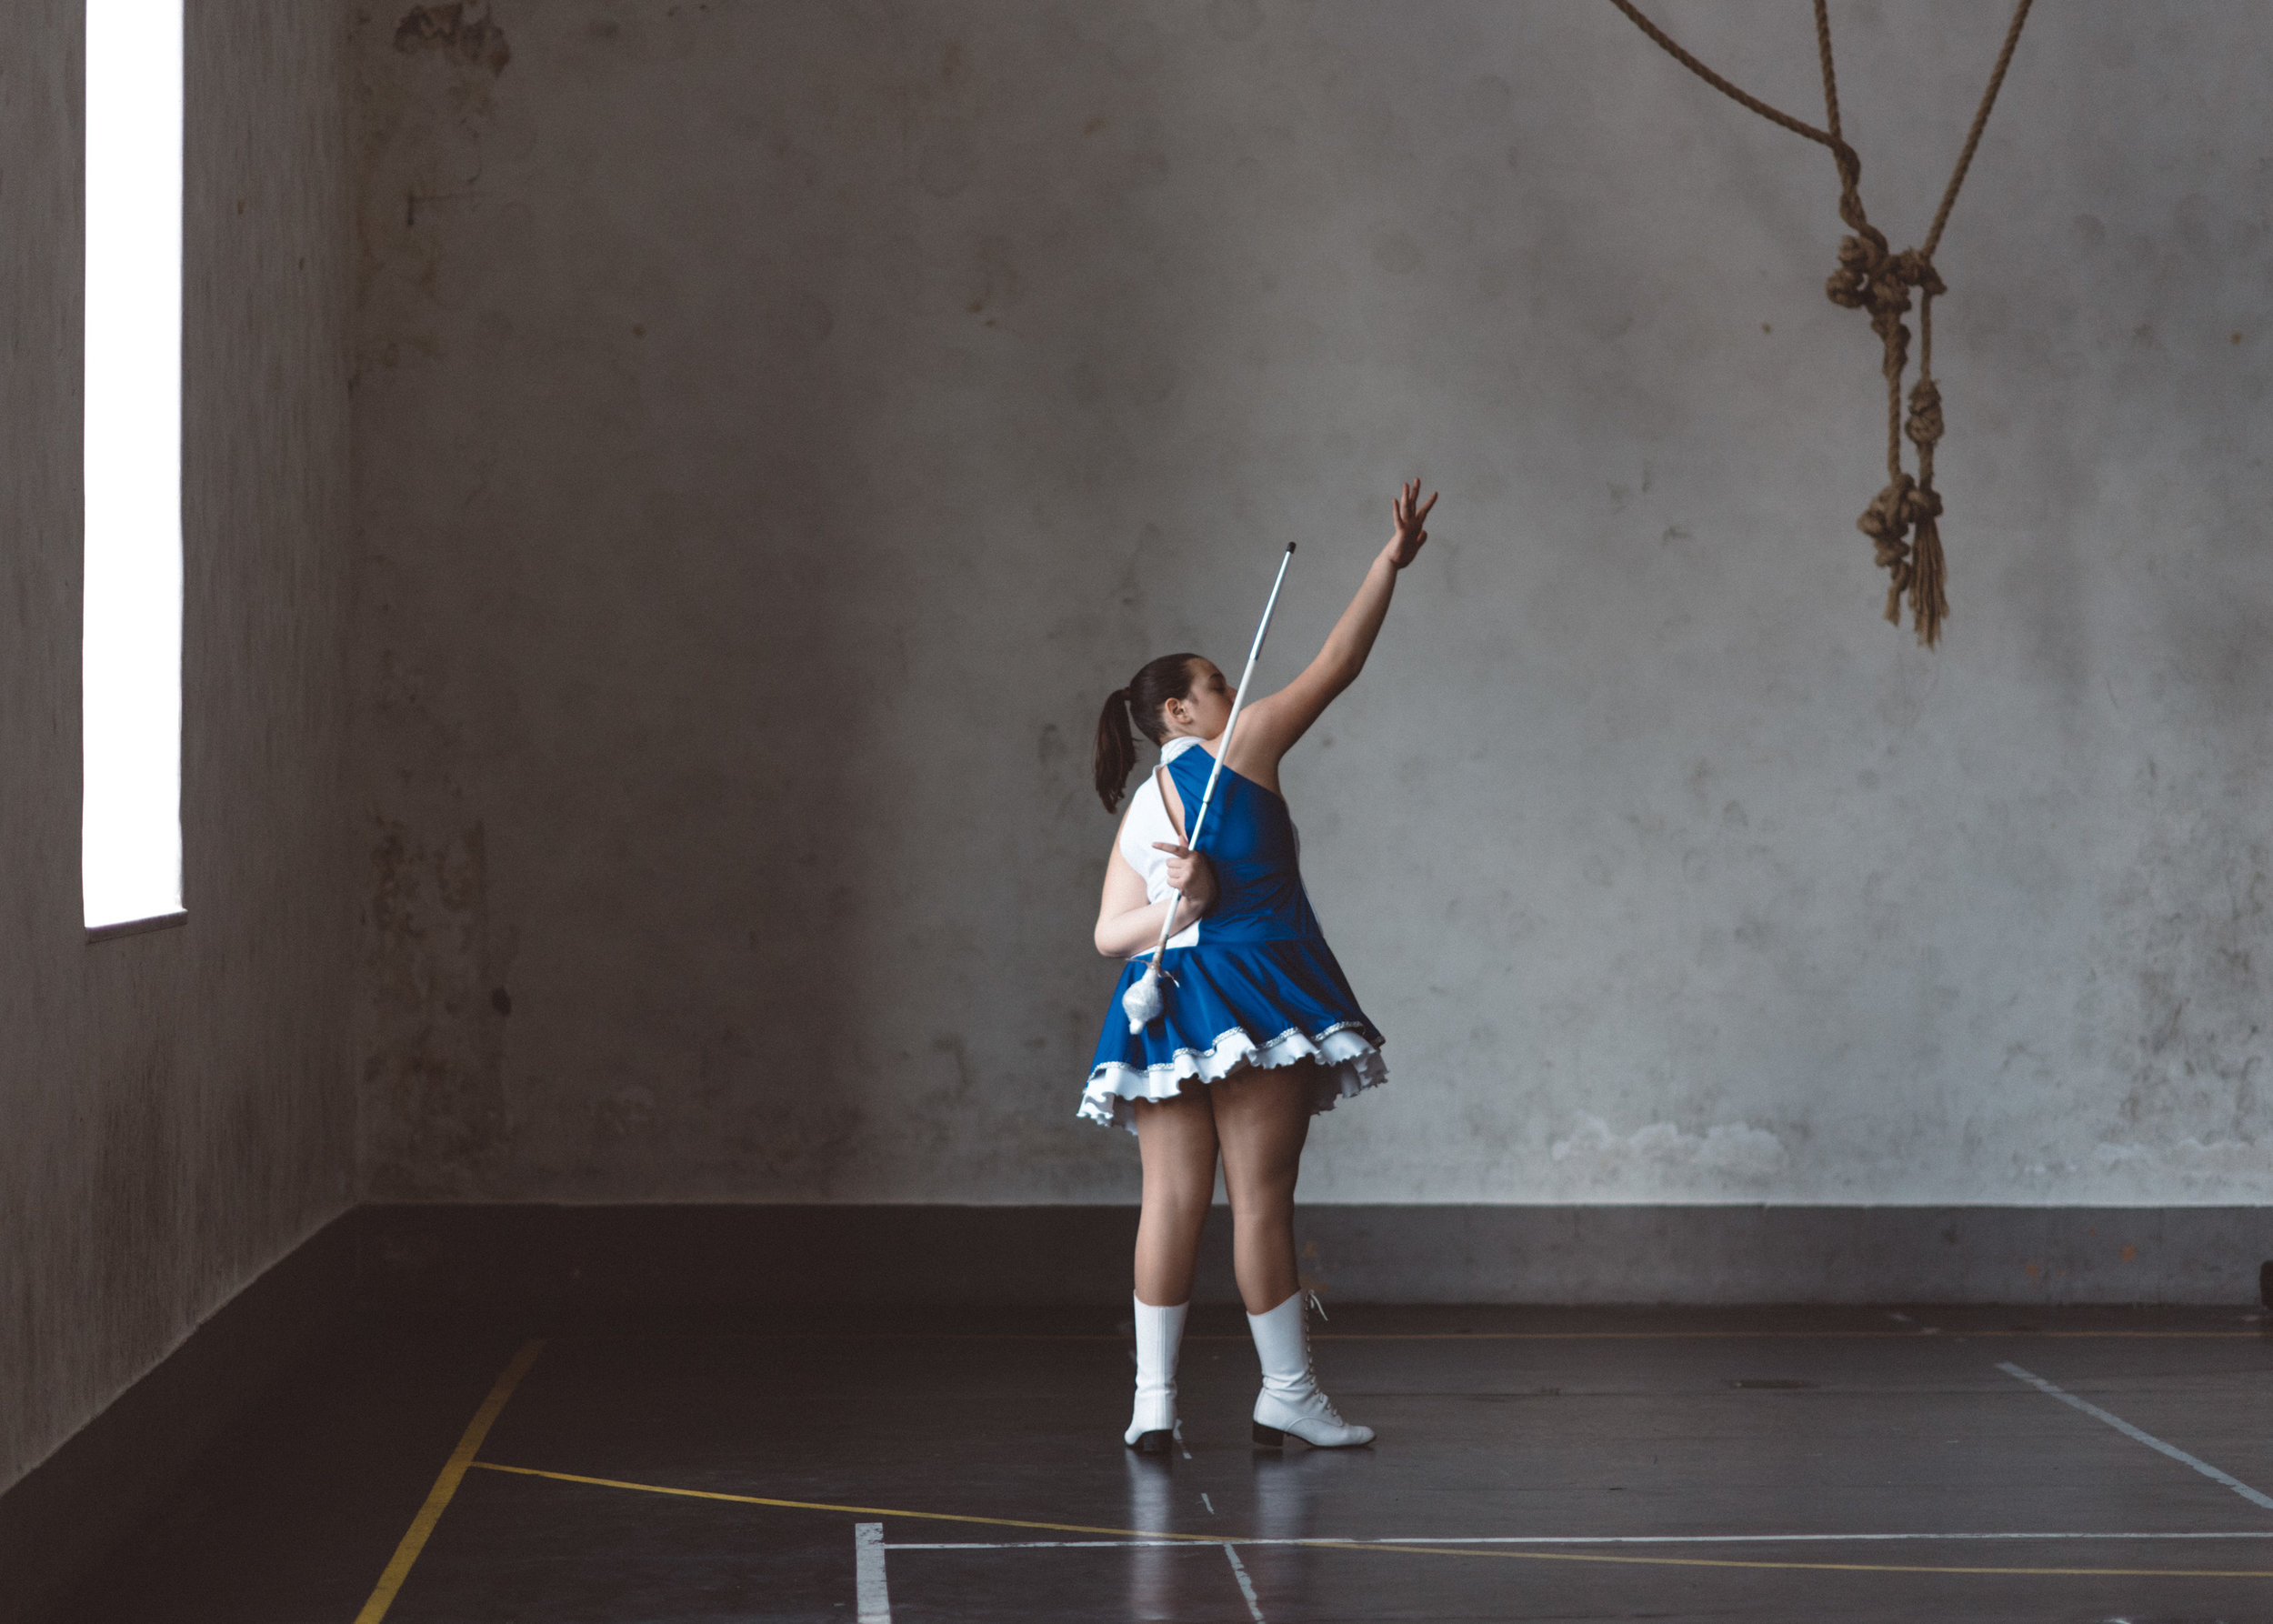 Stefania of the Sailors Majorettes team rehearsing her solo performance.